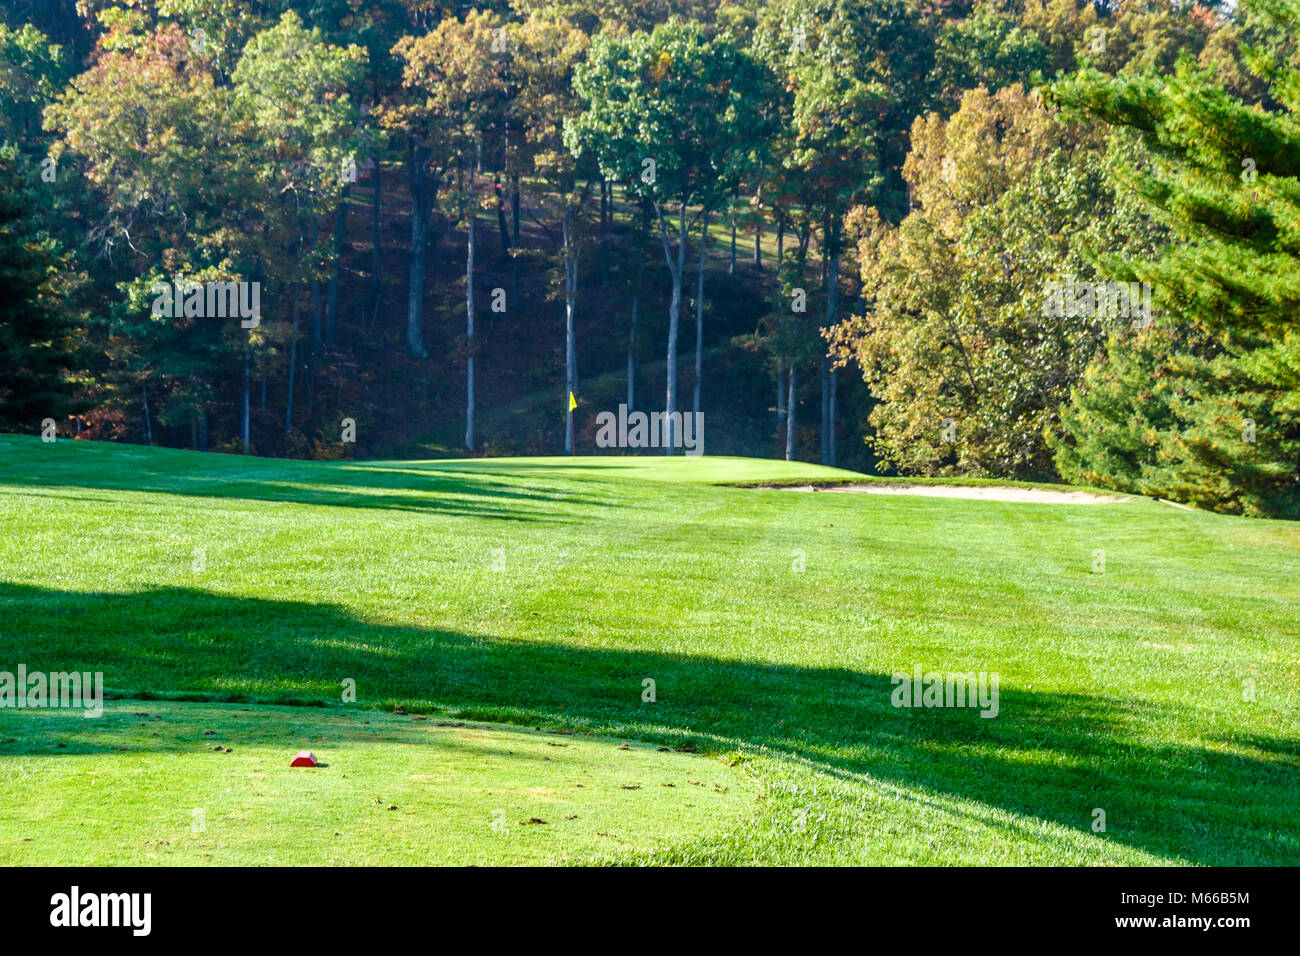 Public Golf Course Stock Photos & Public Golf Course Stock Images ...